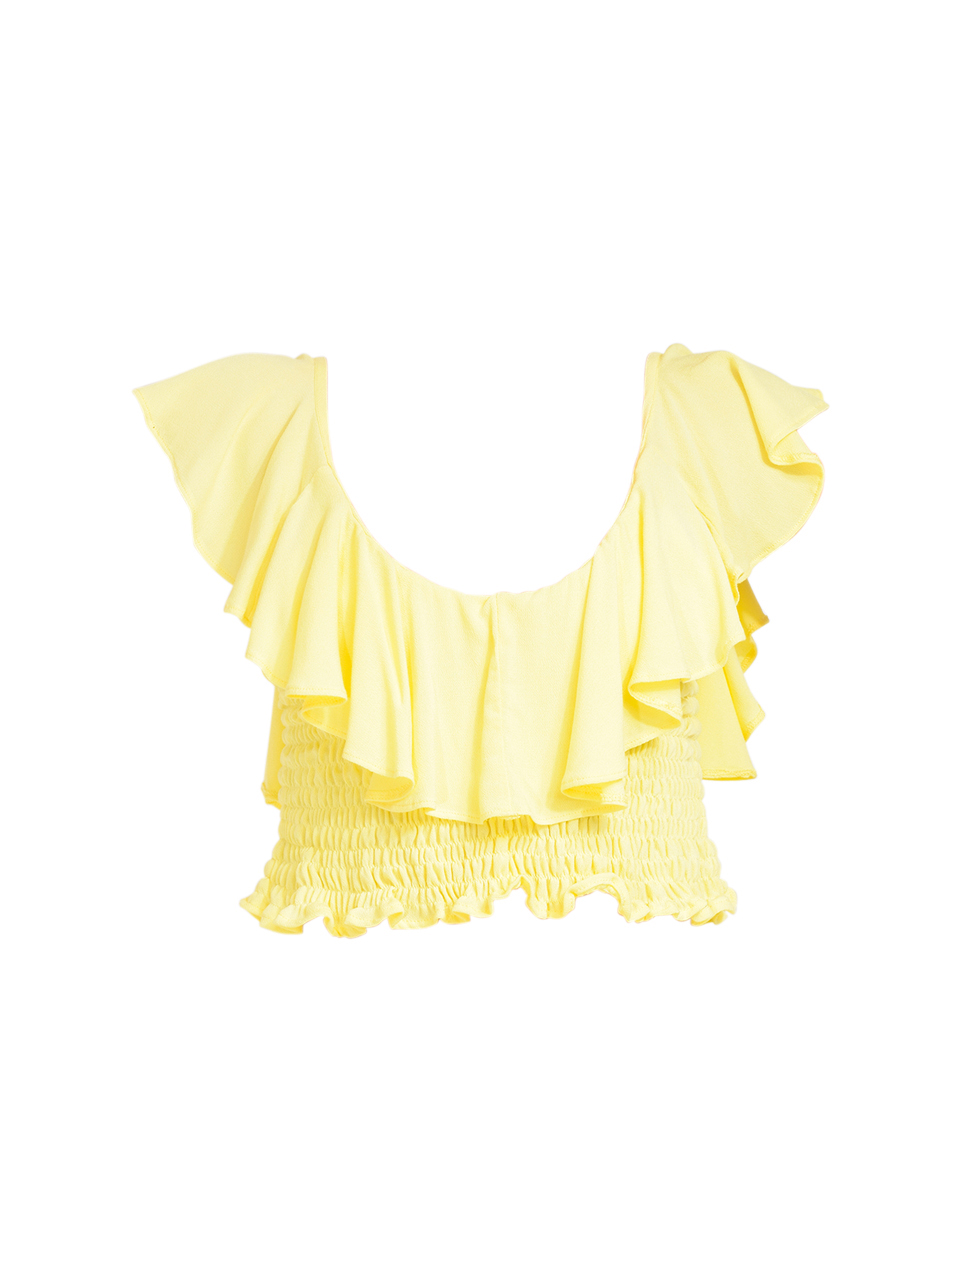 KASIA Sifnos Crop Top in Yellow Product Shot